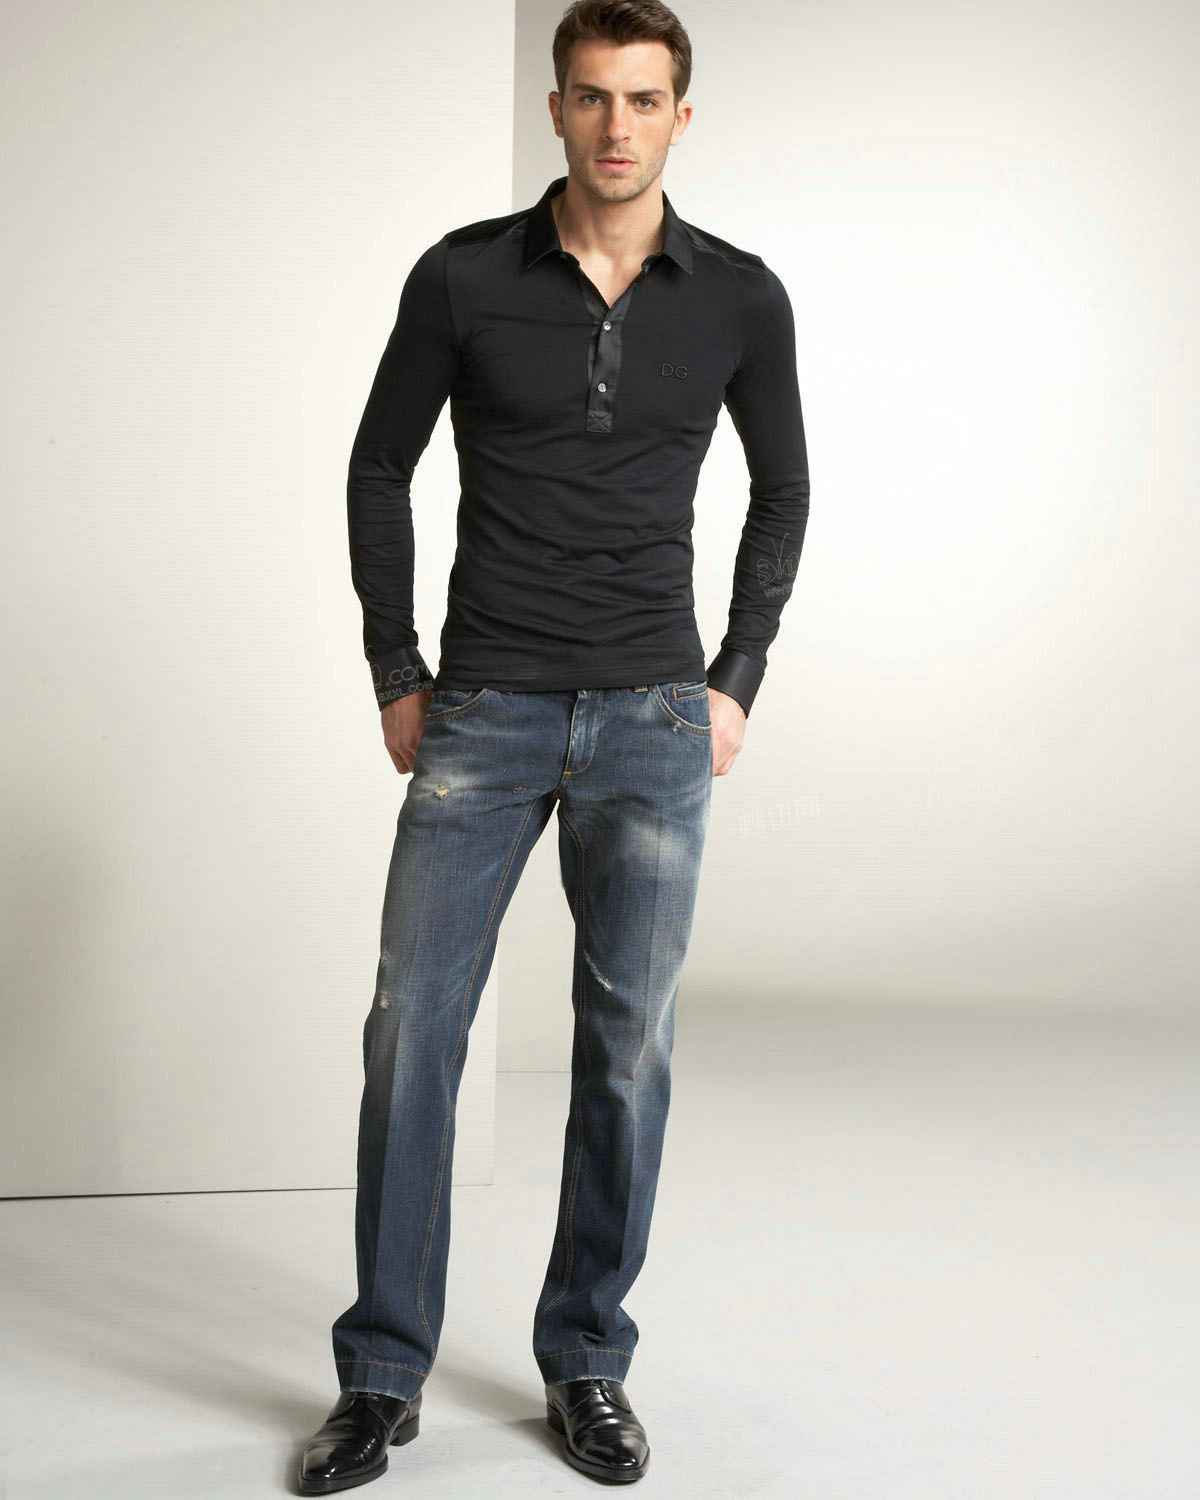 Modern dress casual - Tips For Mens Casual Fashion